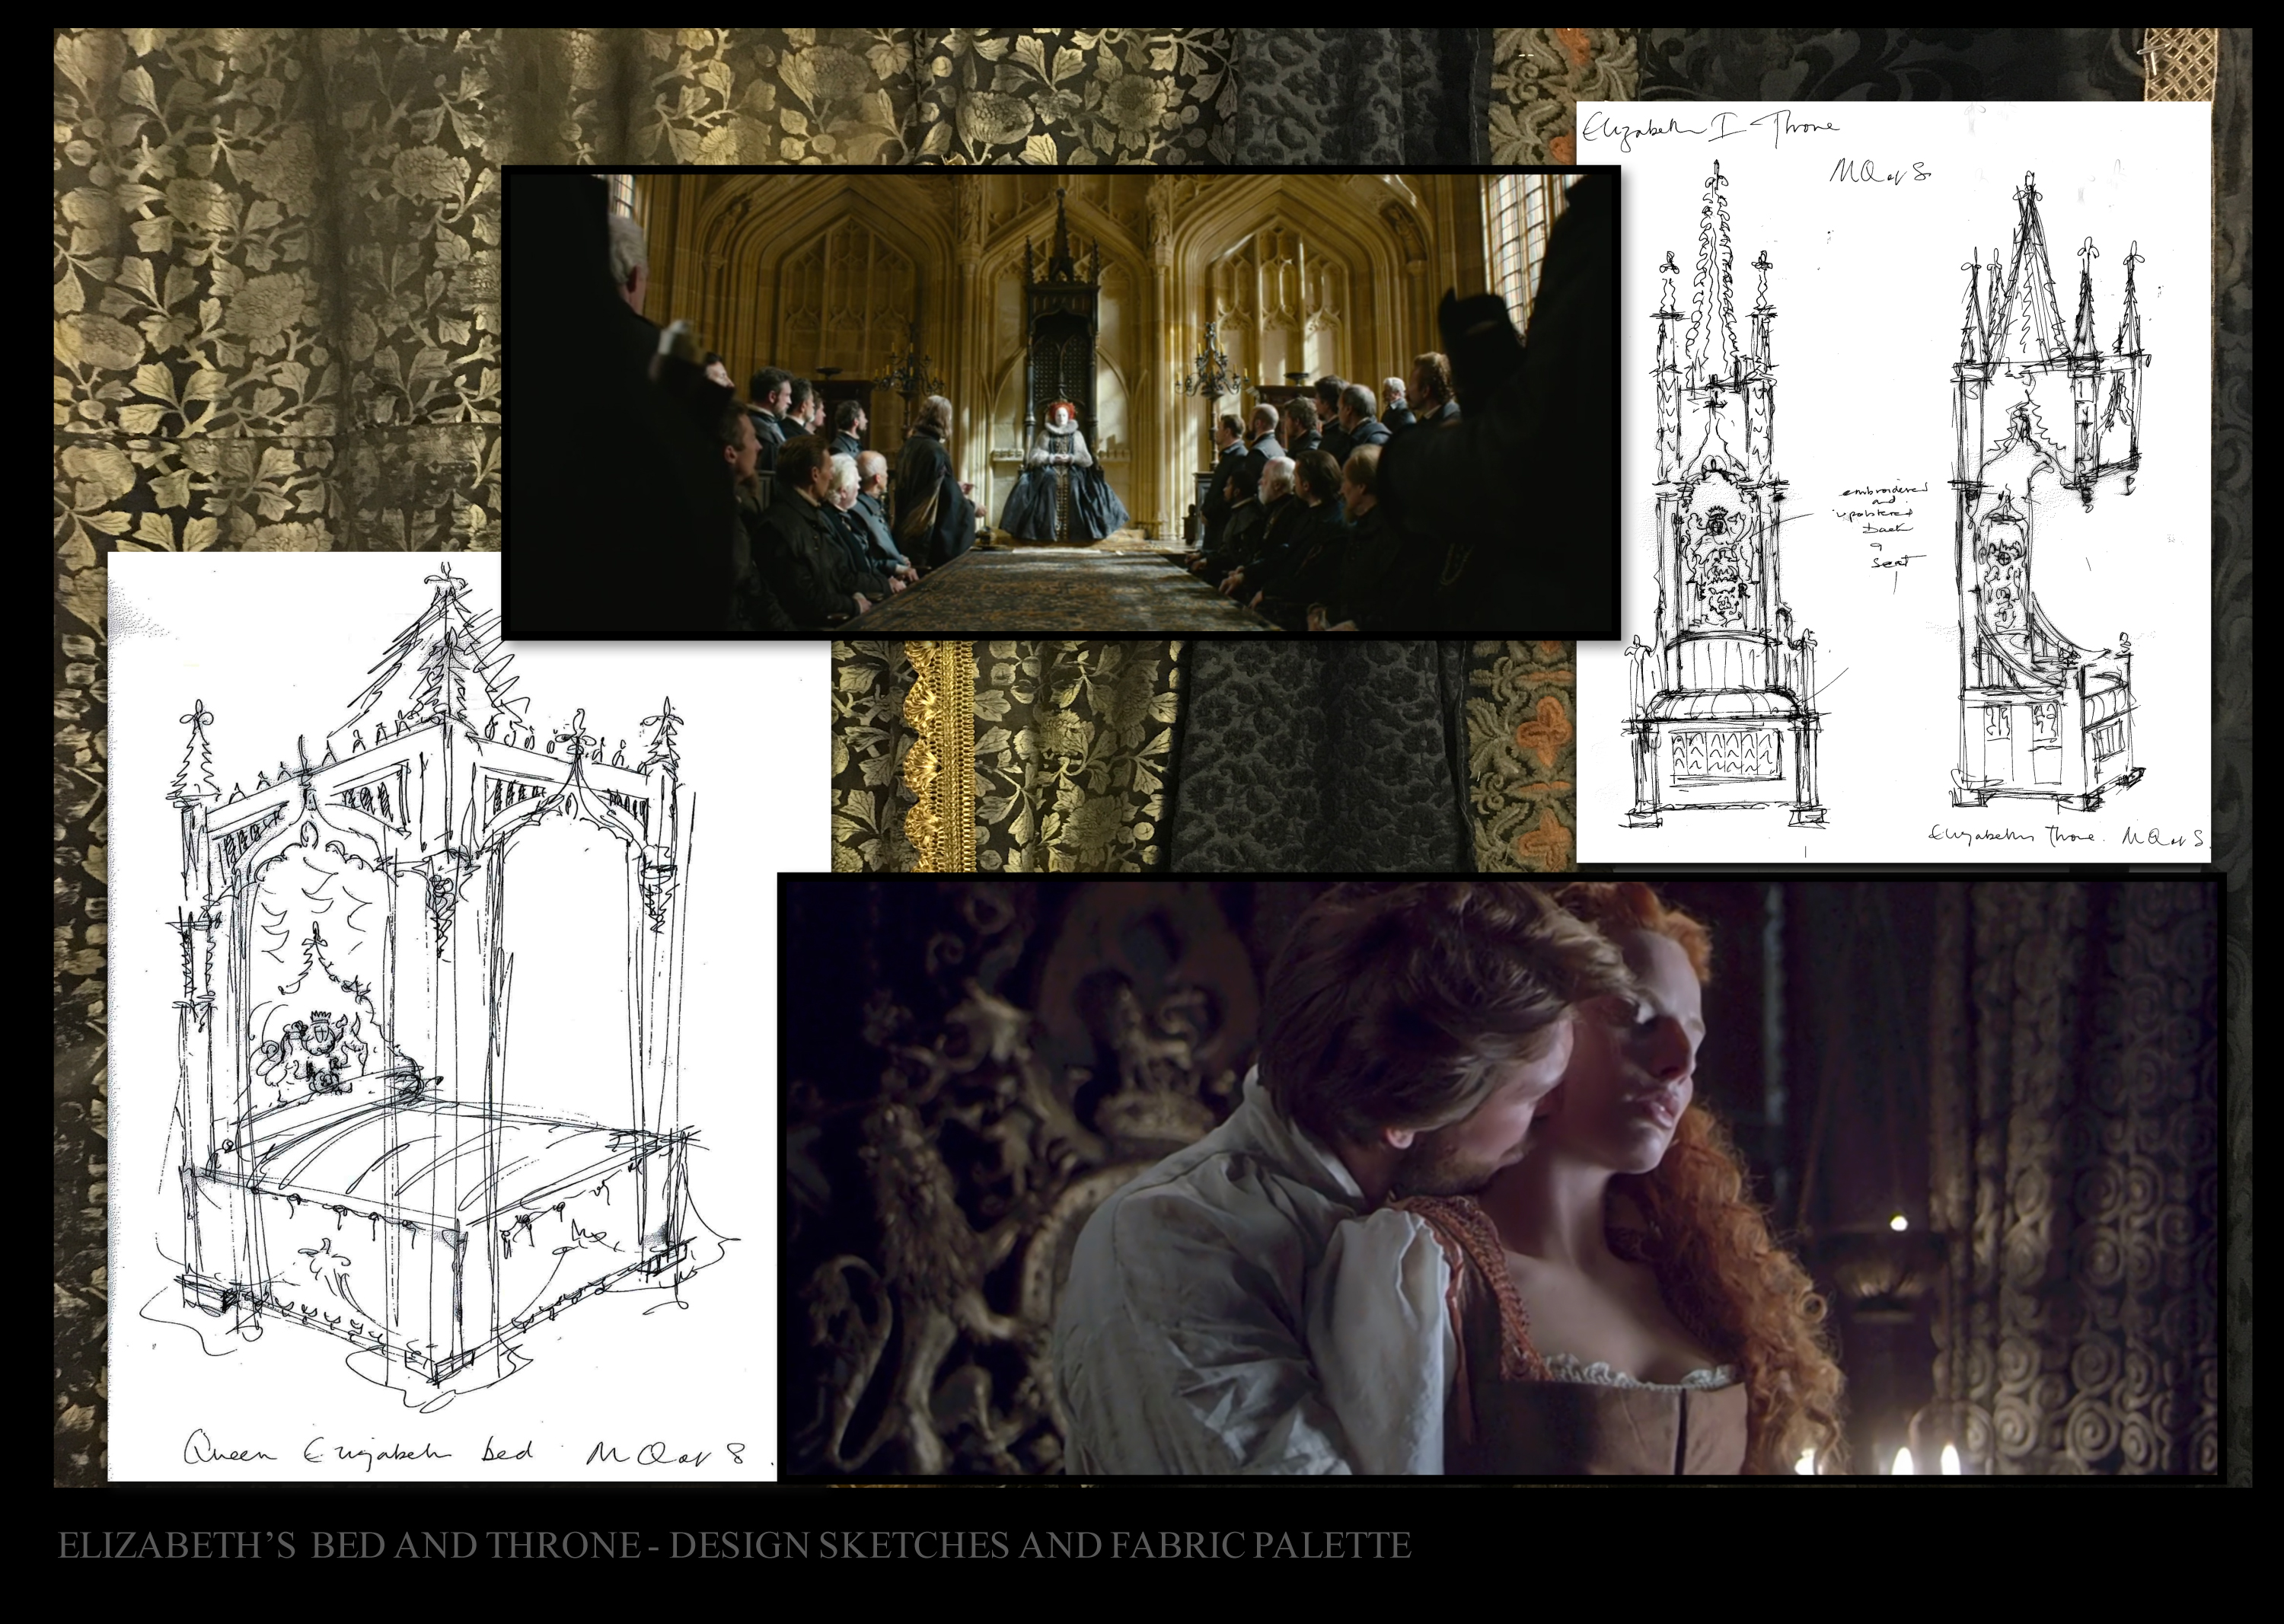 Design sketches for Elizabeth's bed and throne mary queen of scots film set